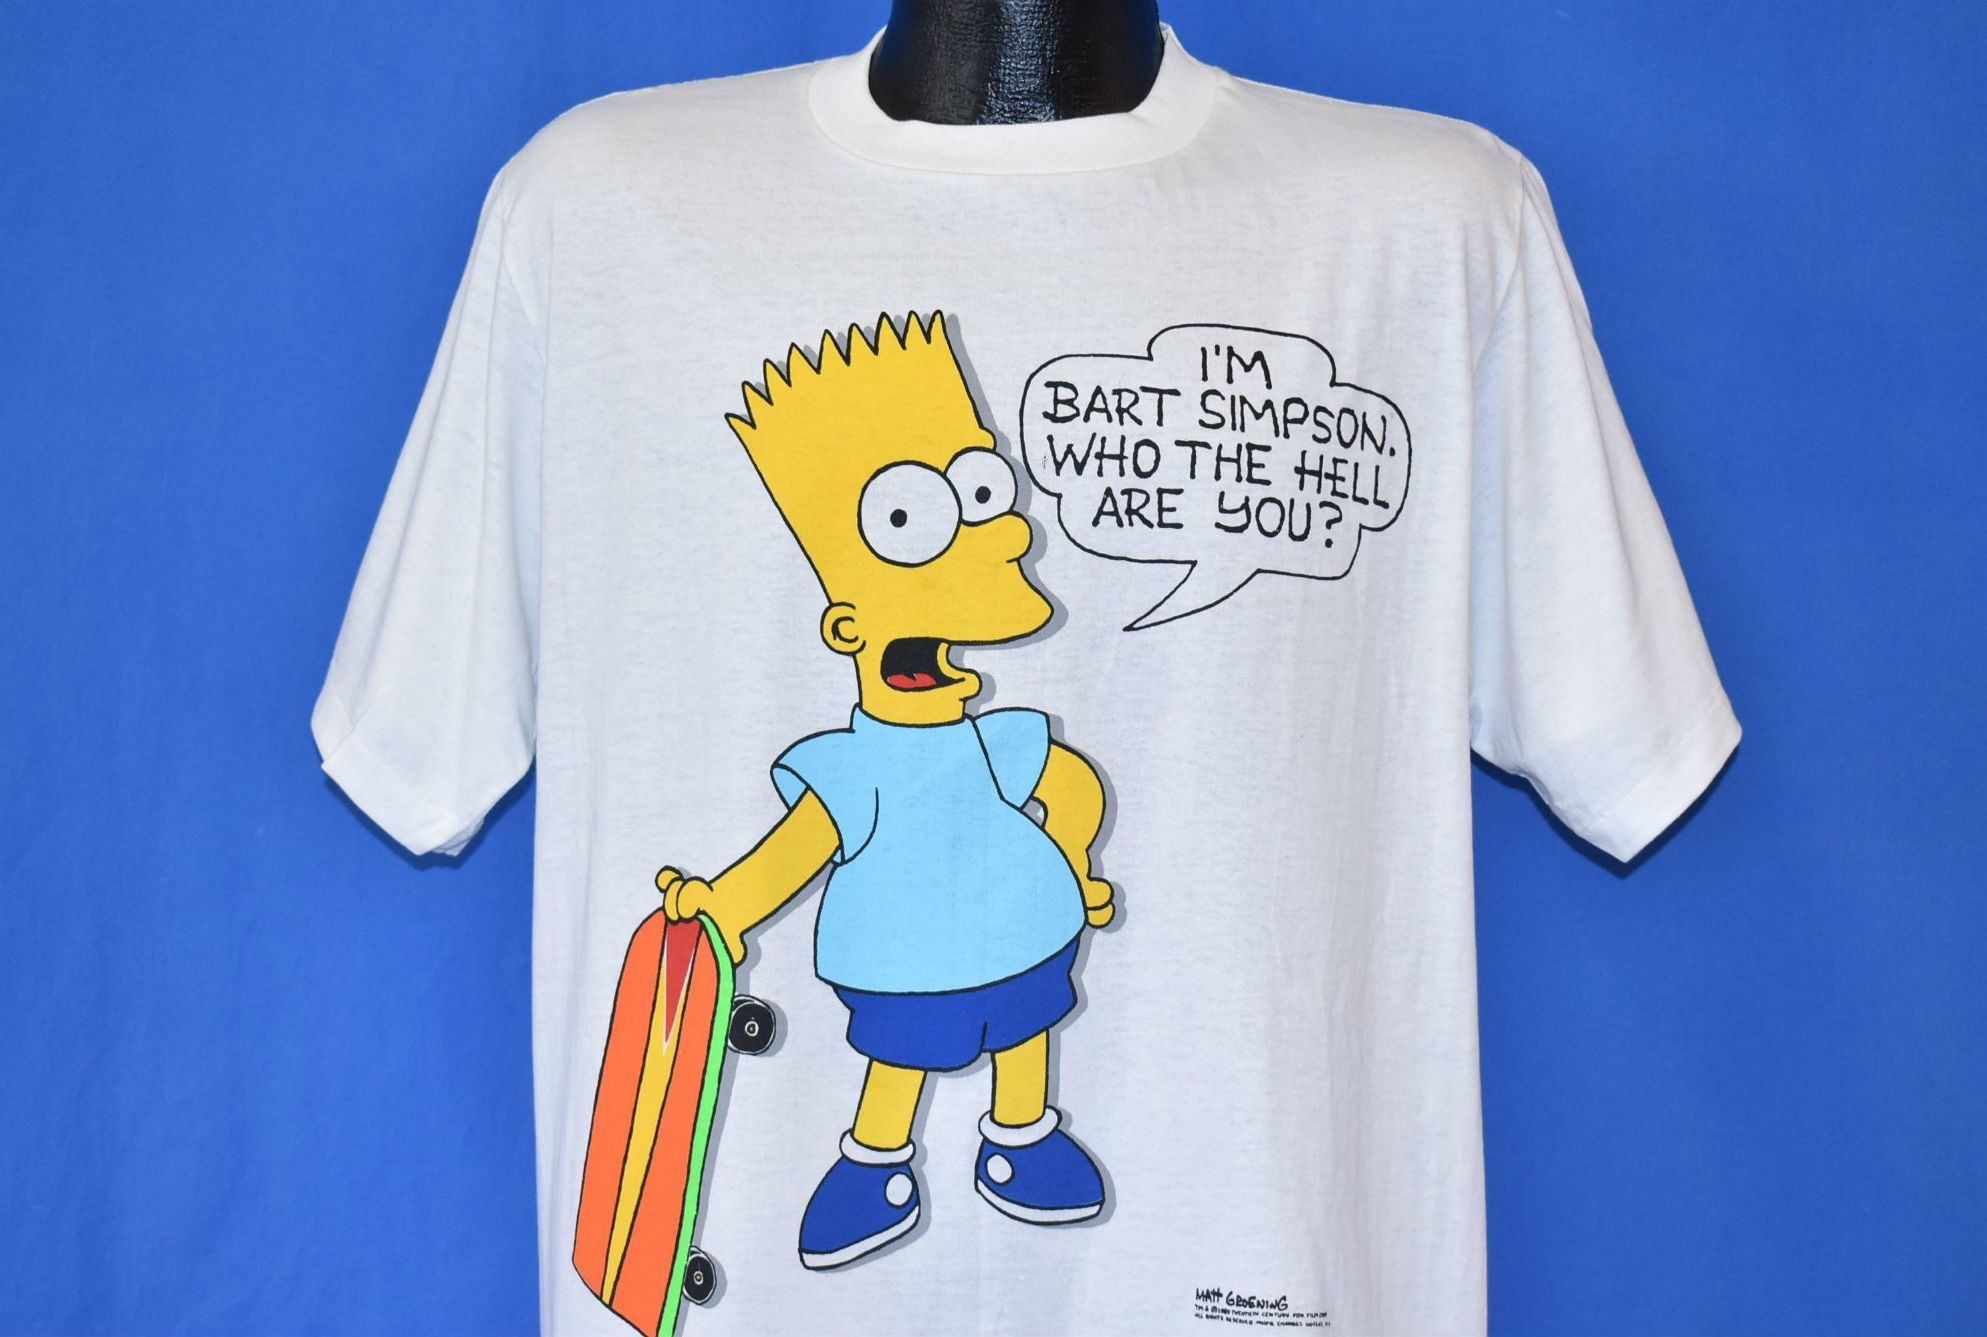 A vintage Bart Simpson t-shirt from the 1990s